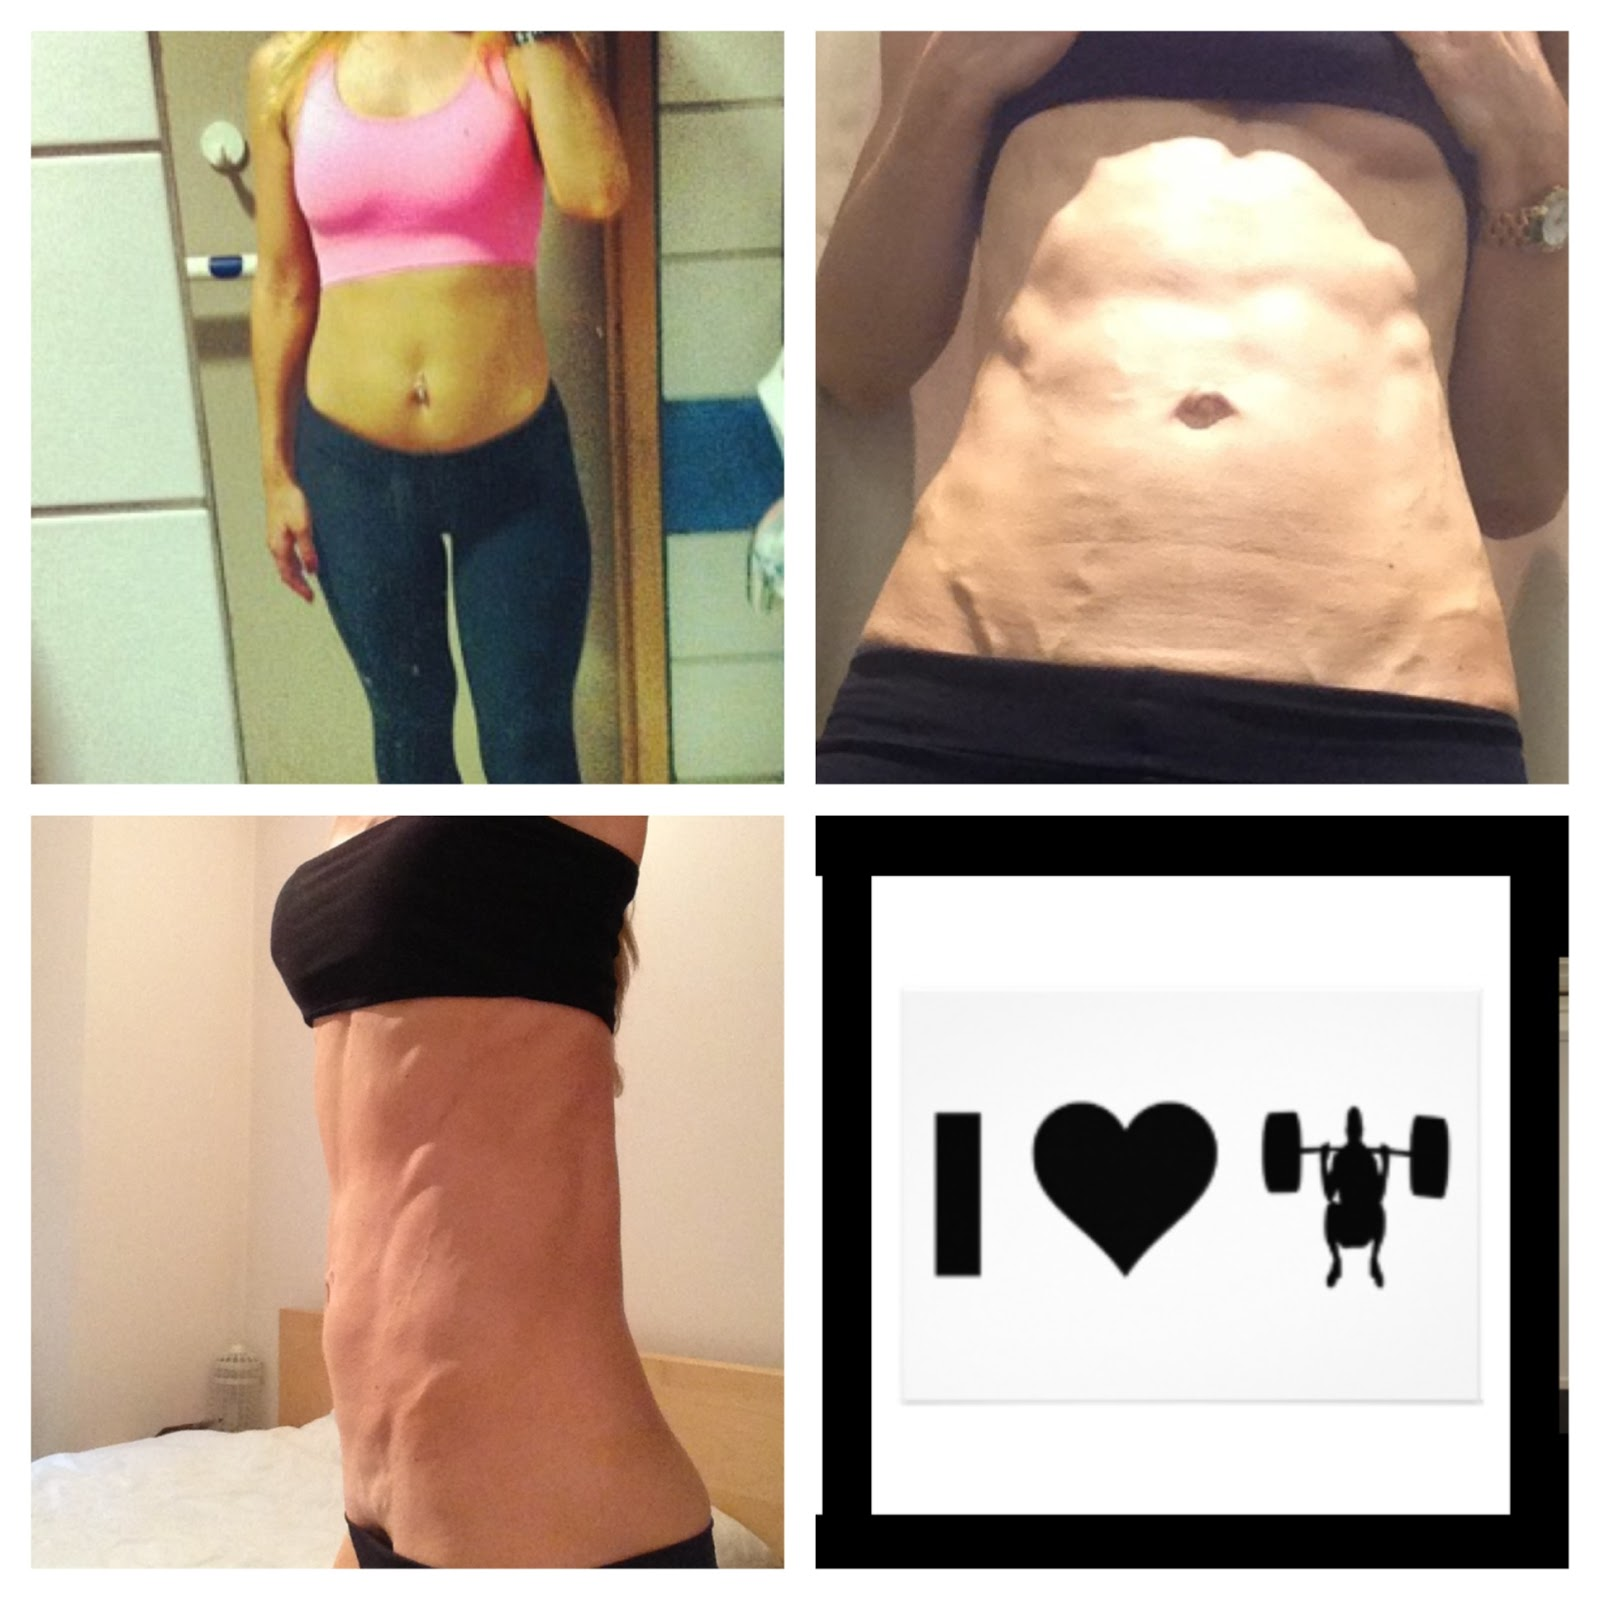 the gallery for gt women strength training before and after